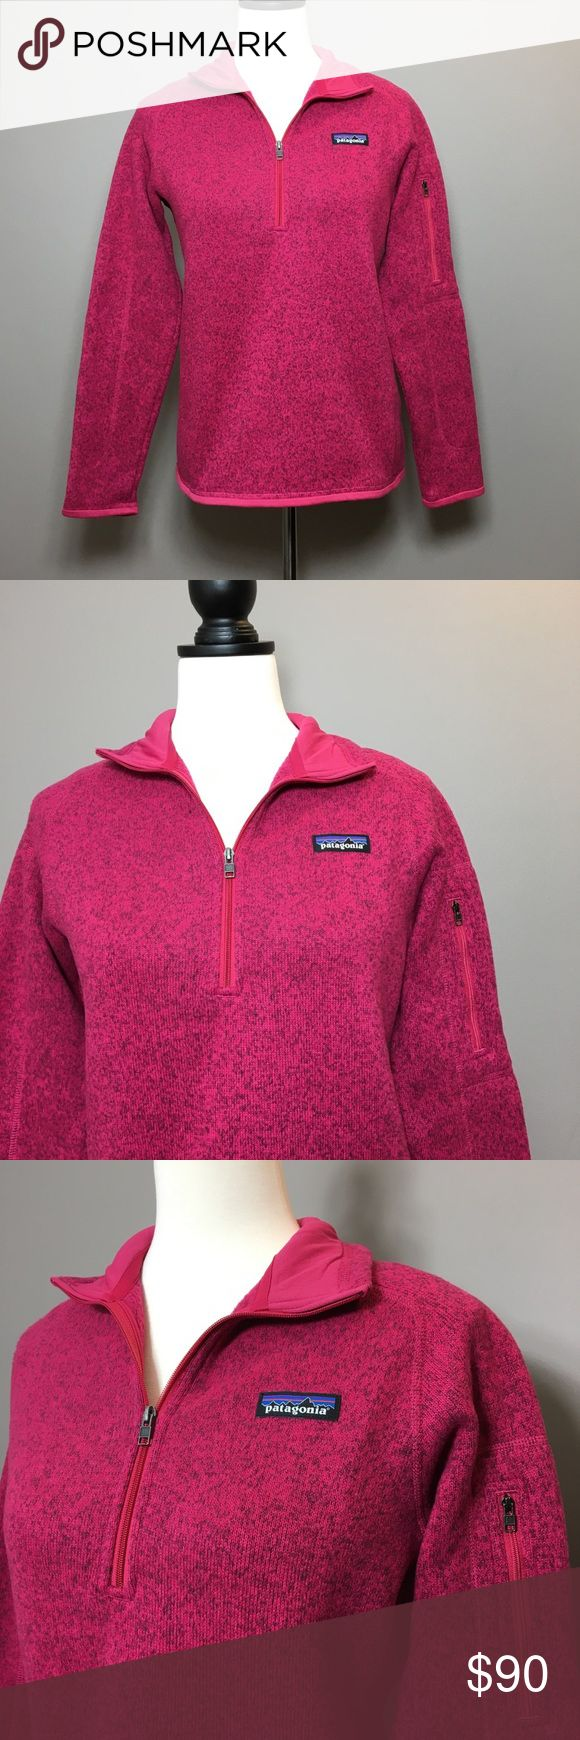 Patagonia Better Sweater in Craft Pink Brand new with tags attached.  1/4 zip Womens Better Sweater pullover in Craft Pink Patagonia Sweaters